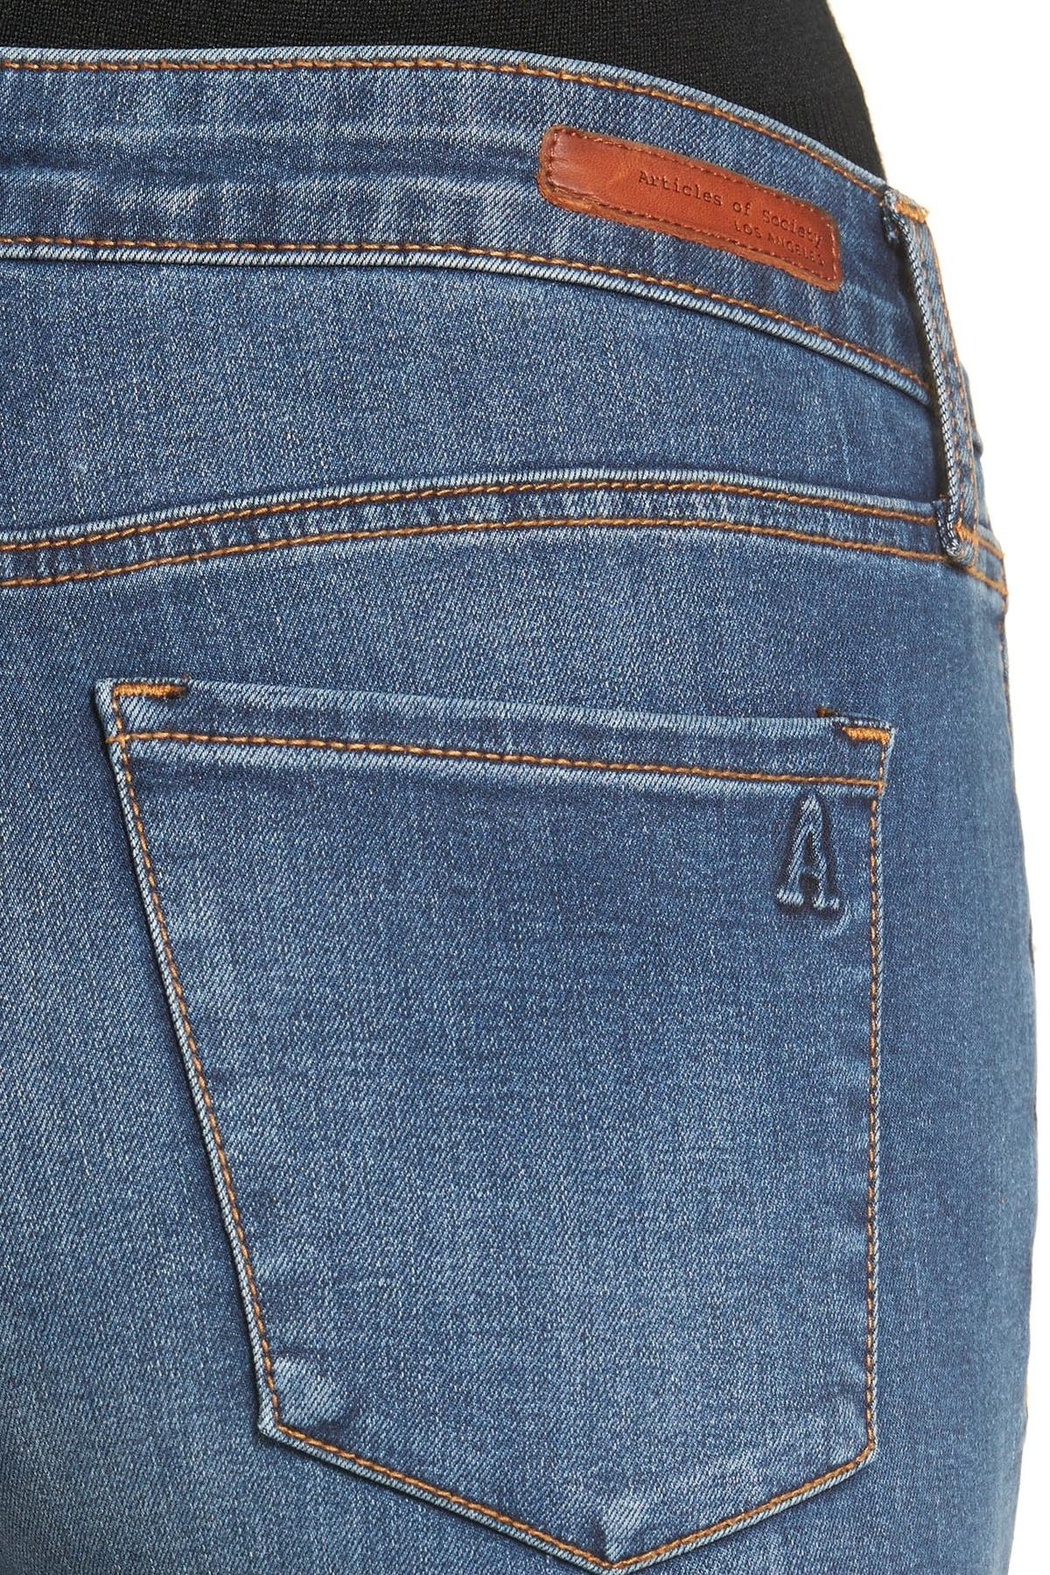 Articles of Society Bancroft Blue Jeans - Front Full Image